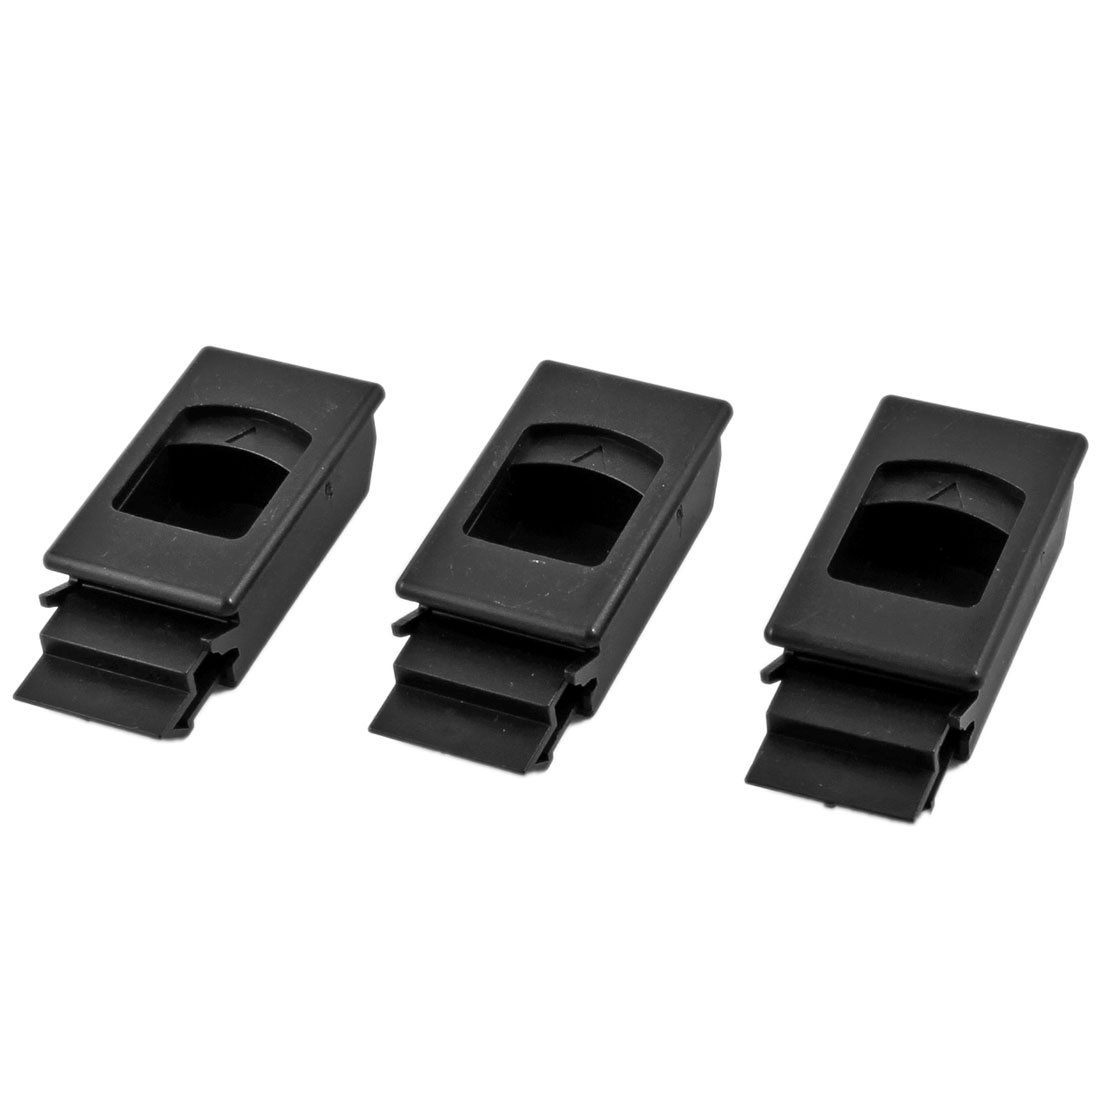 3 Pcs Plastic Inside Pull Triangle Mark Latch Black for Cabinet